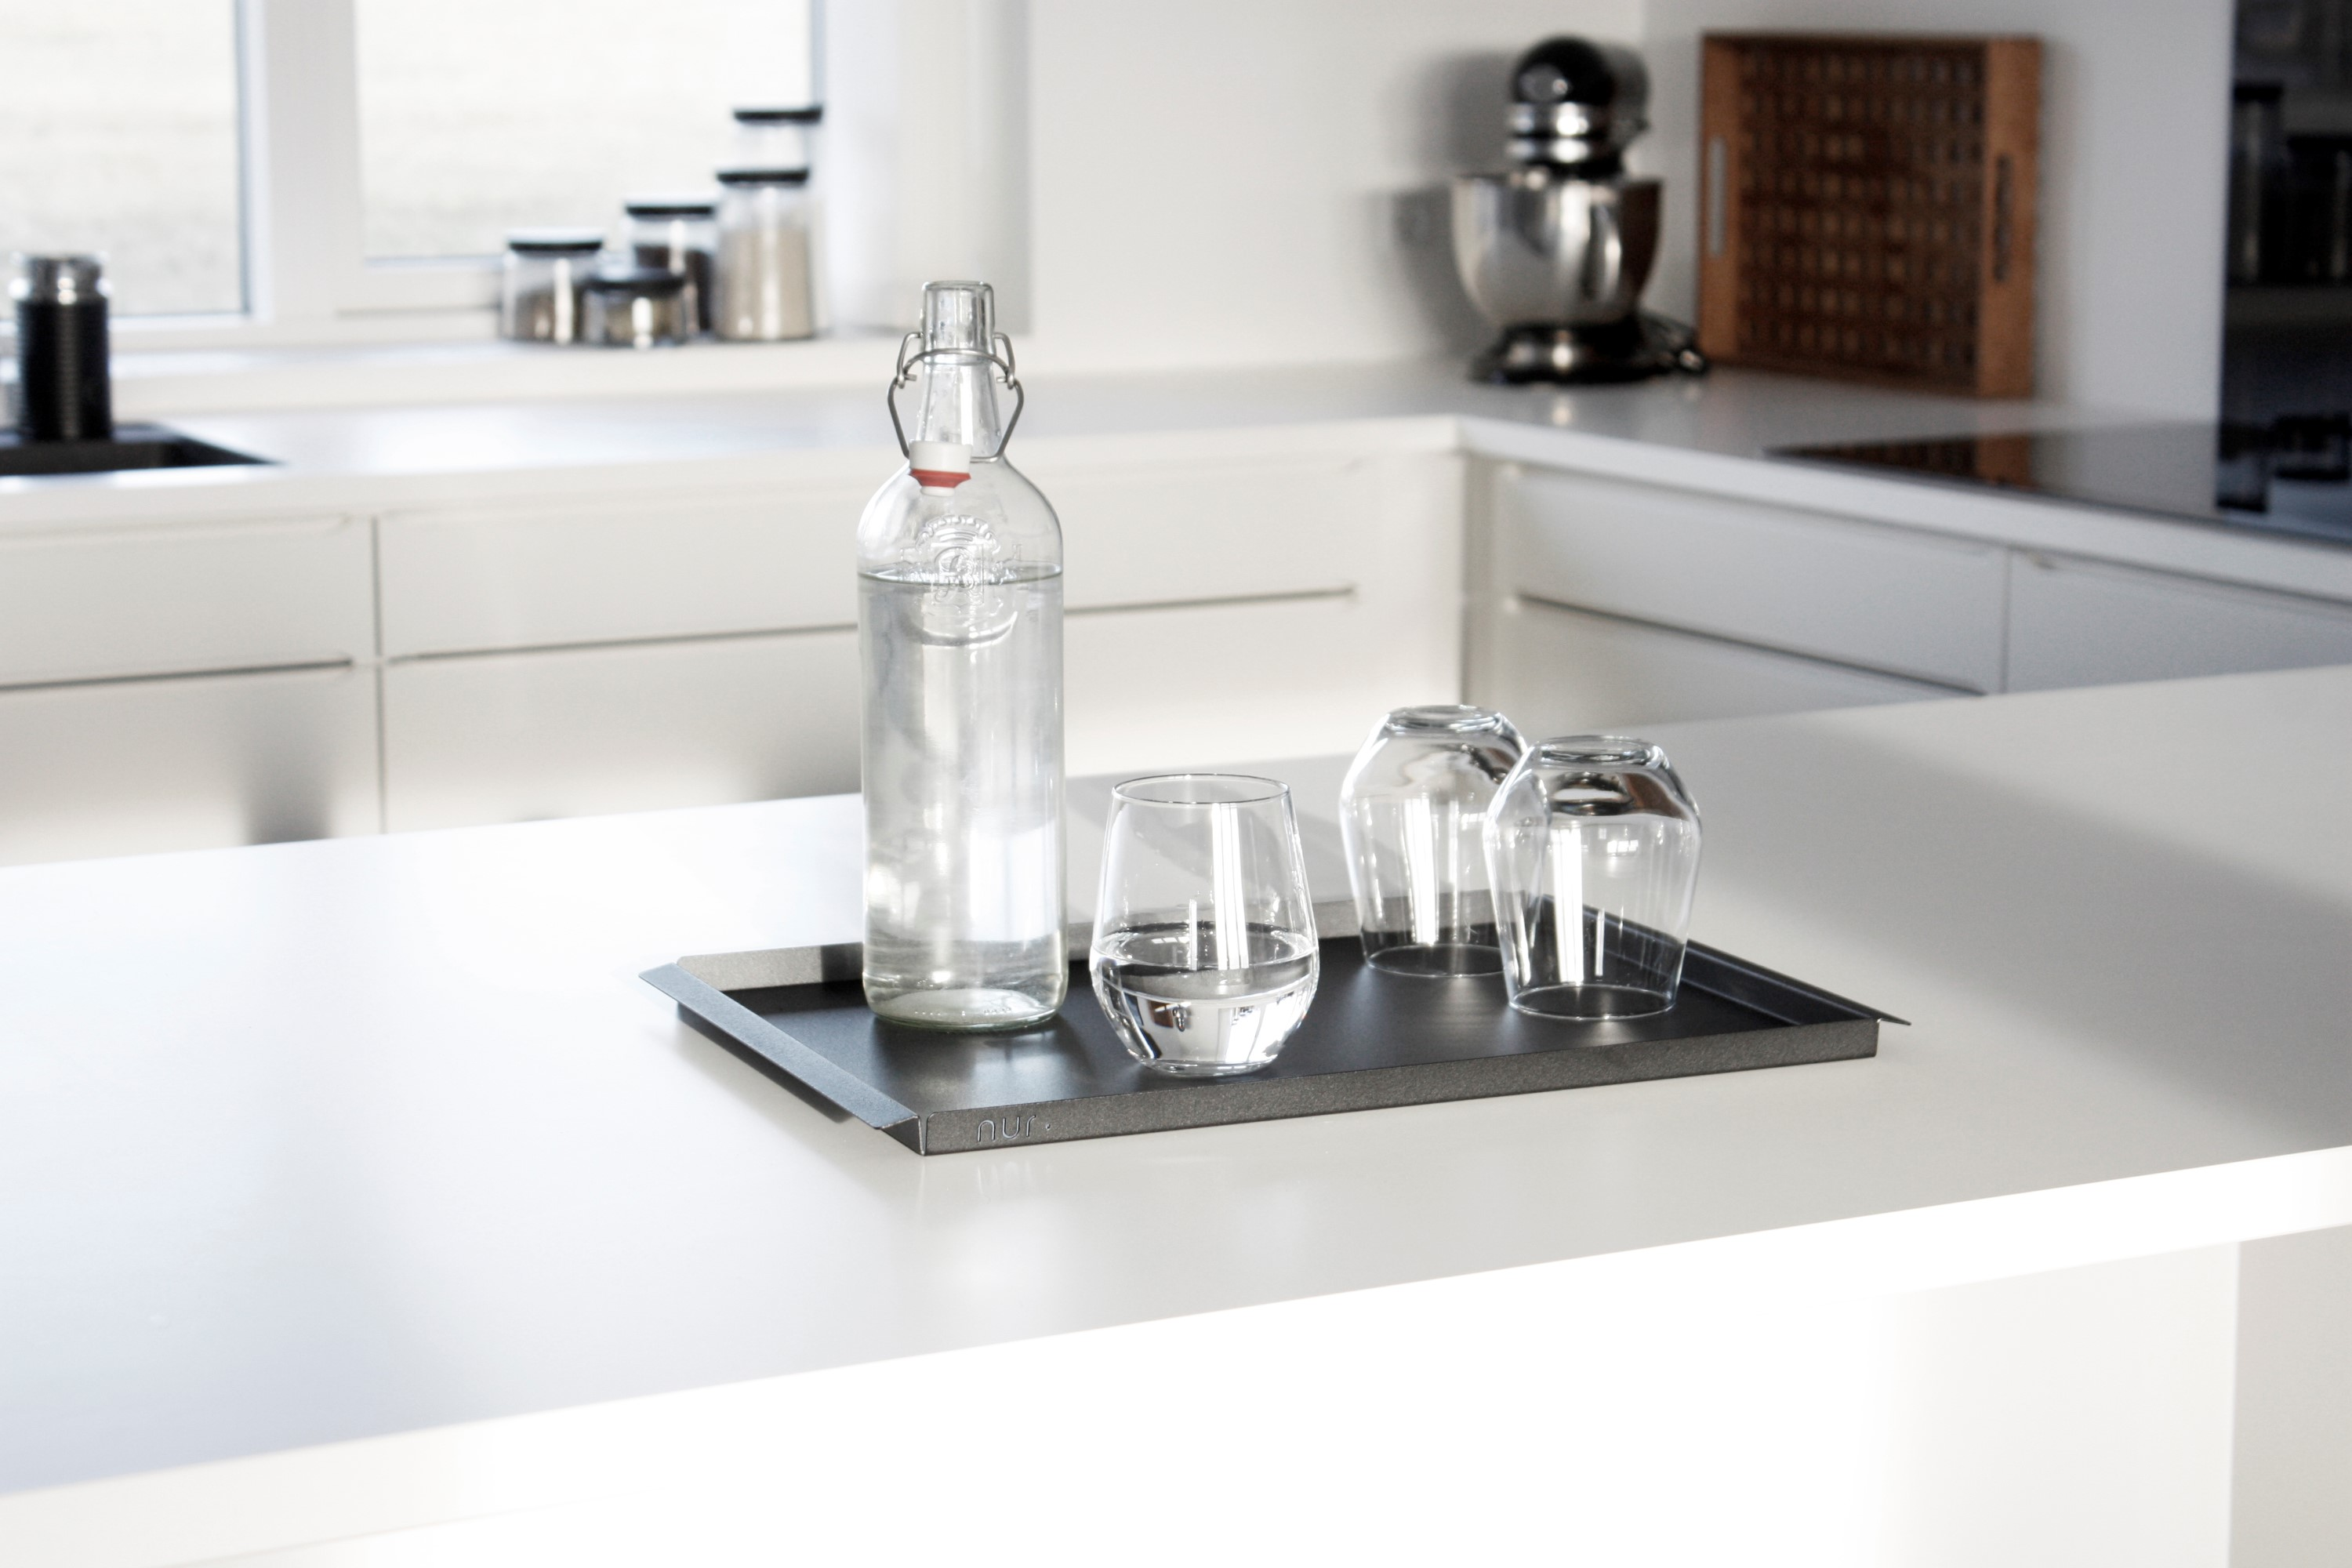 Kitchen details with serving tray